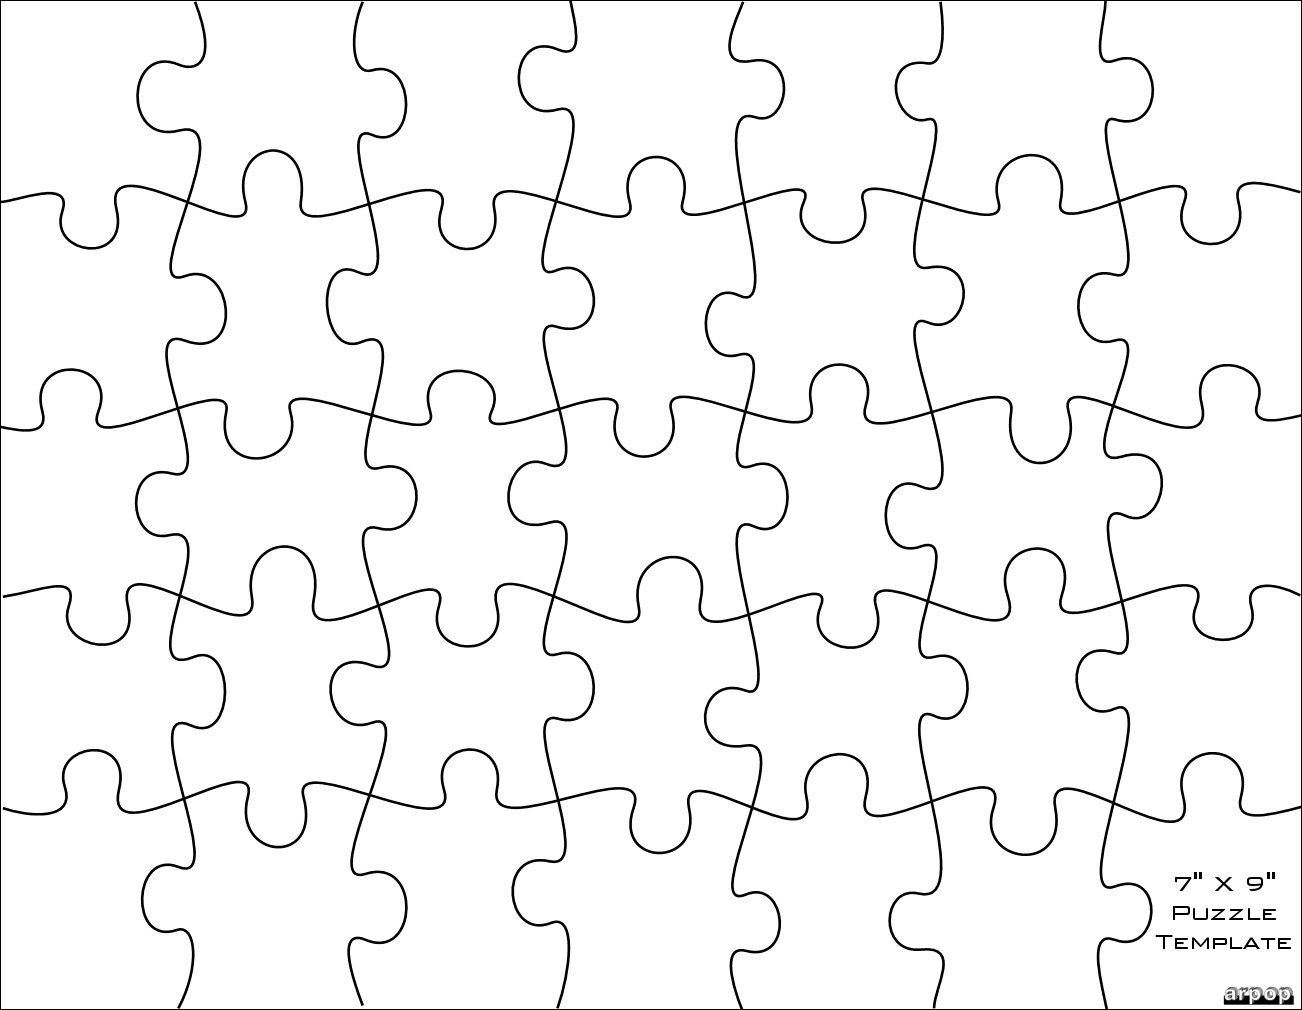 Free Scroll Saw Patternsarpop: Jigsaw Puzzle Templates | Middle - Printable Jigsaw Puzzles For Middle School